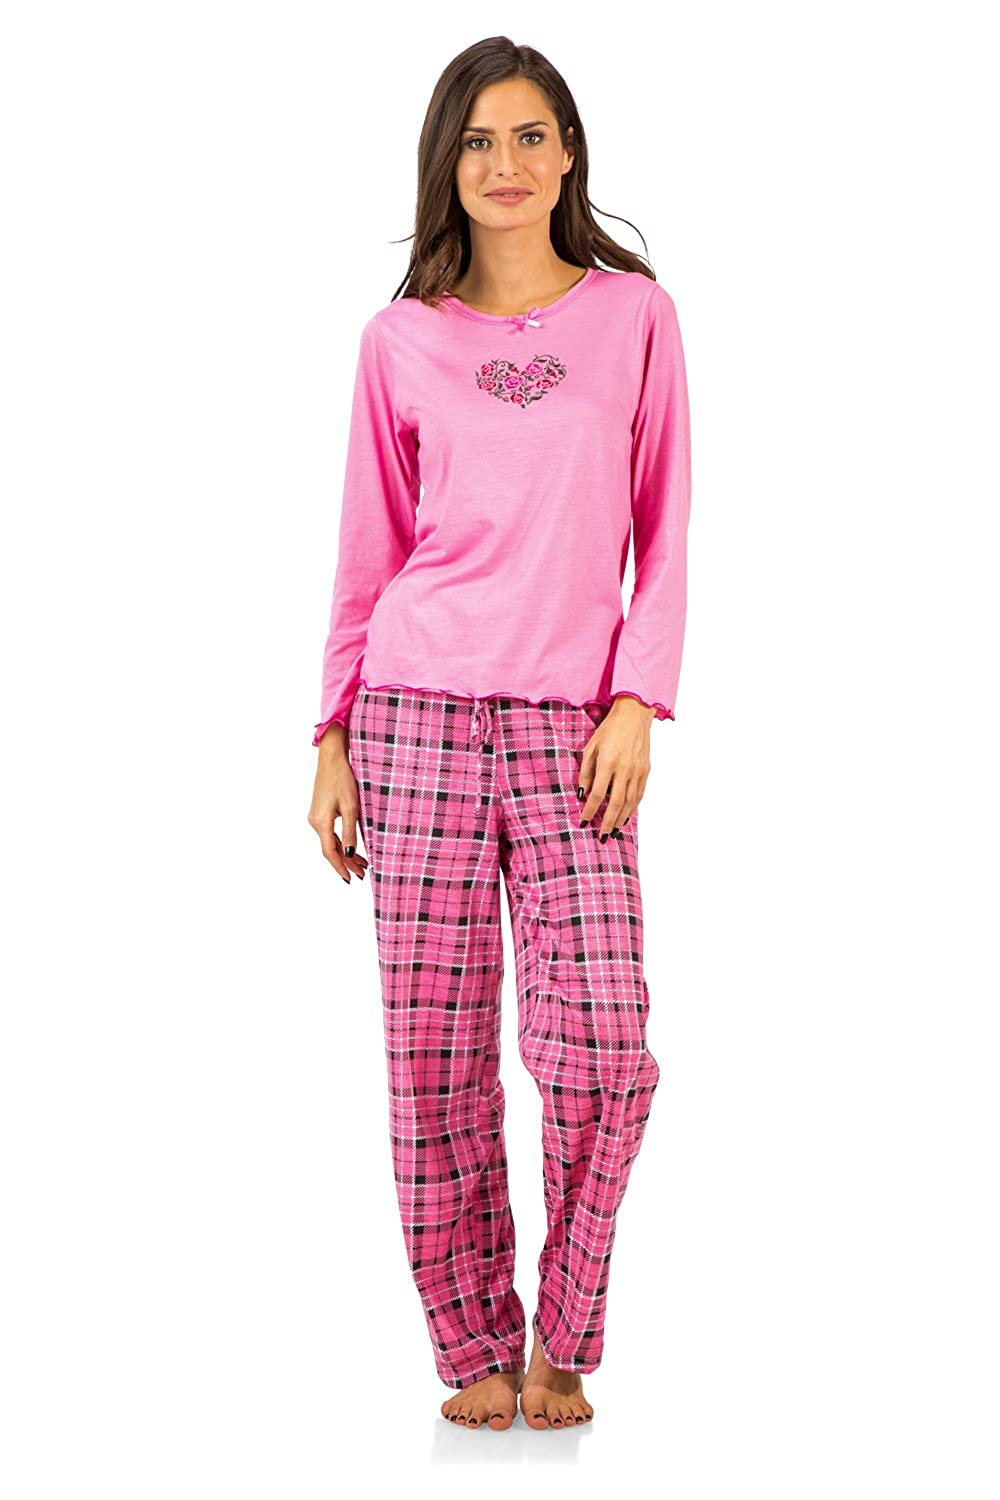 Casual Nights Women's Crew Top Long Sleeve Pajama Set 2 Piece Pj' s Set